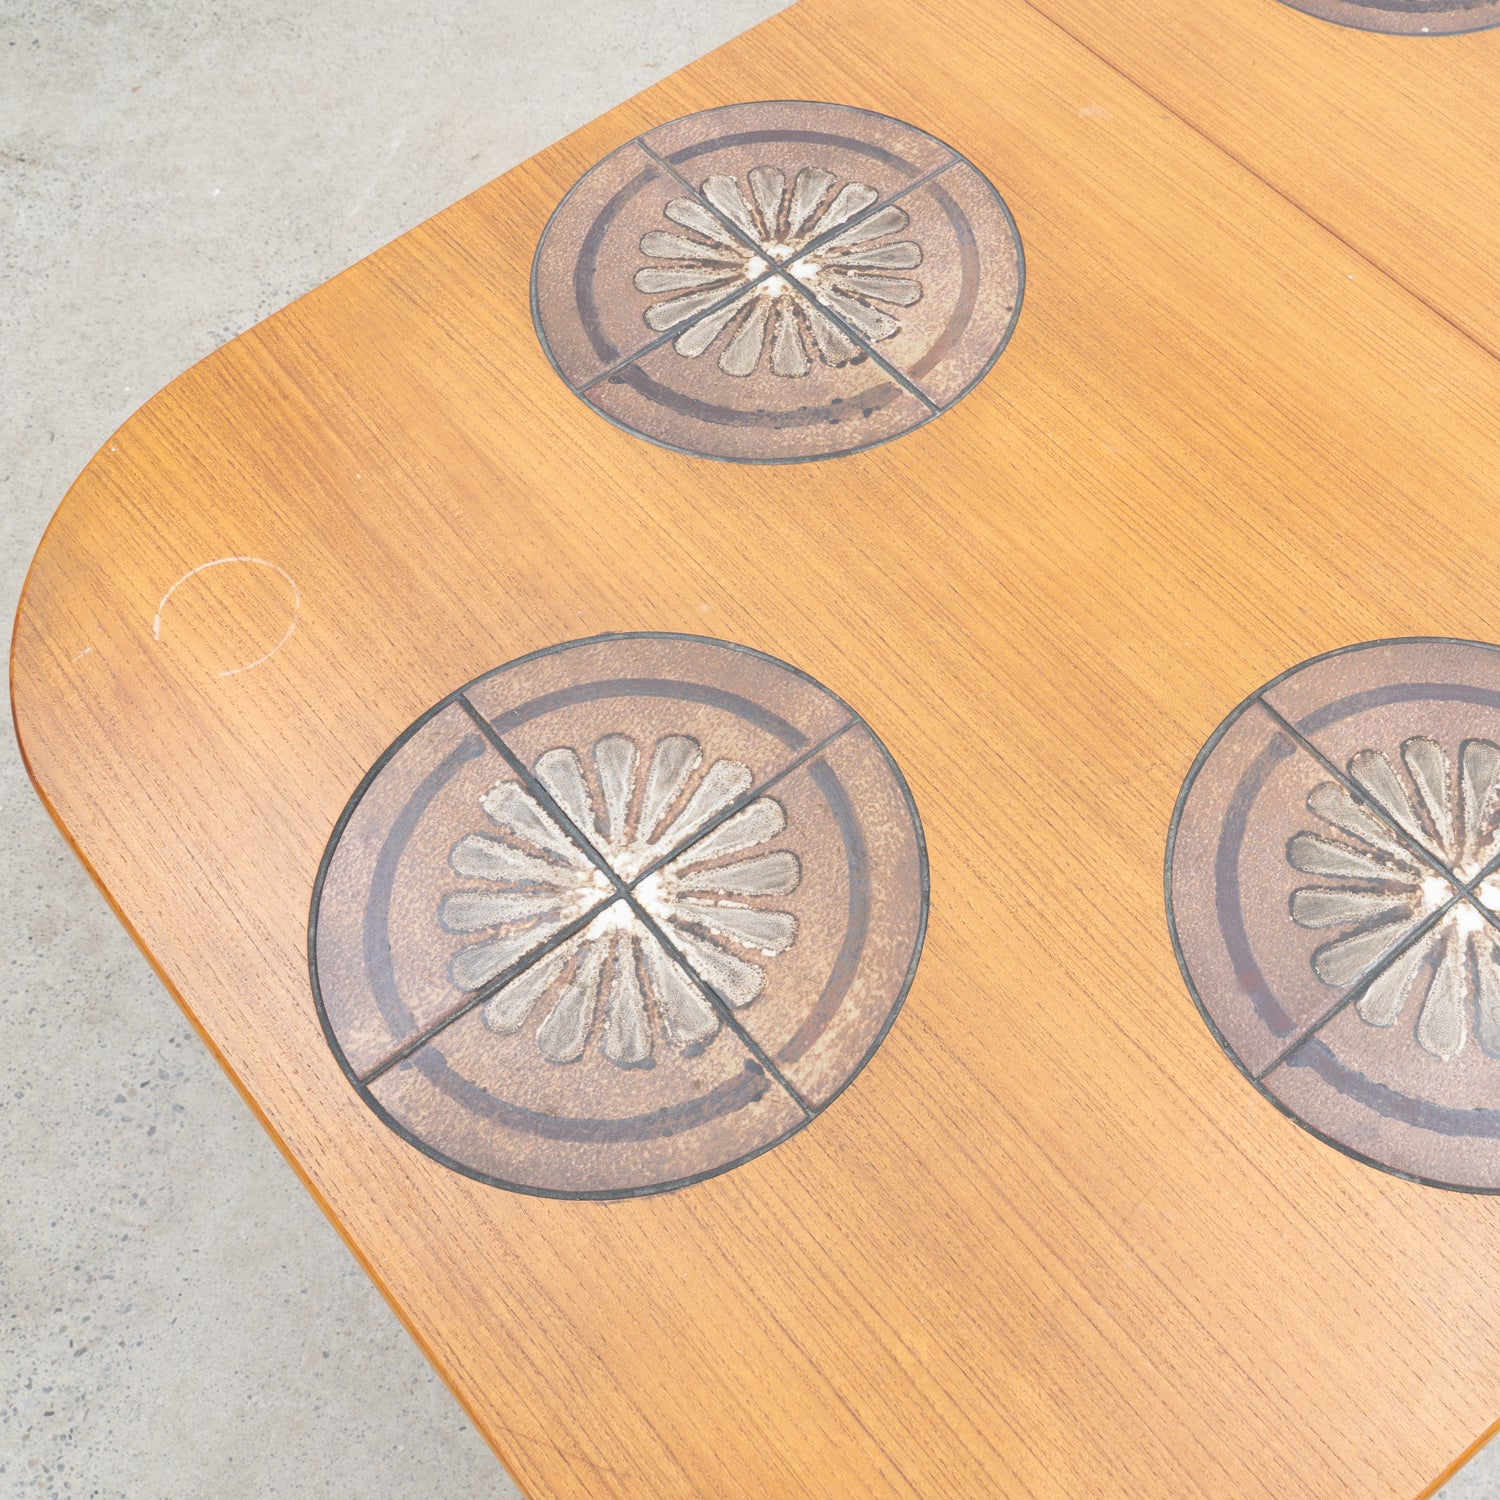 Teak Dining Table with Tile Inlay